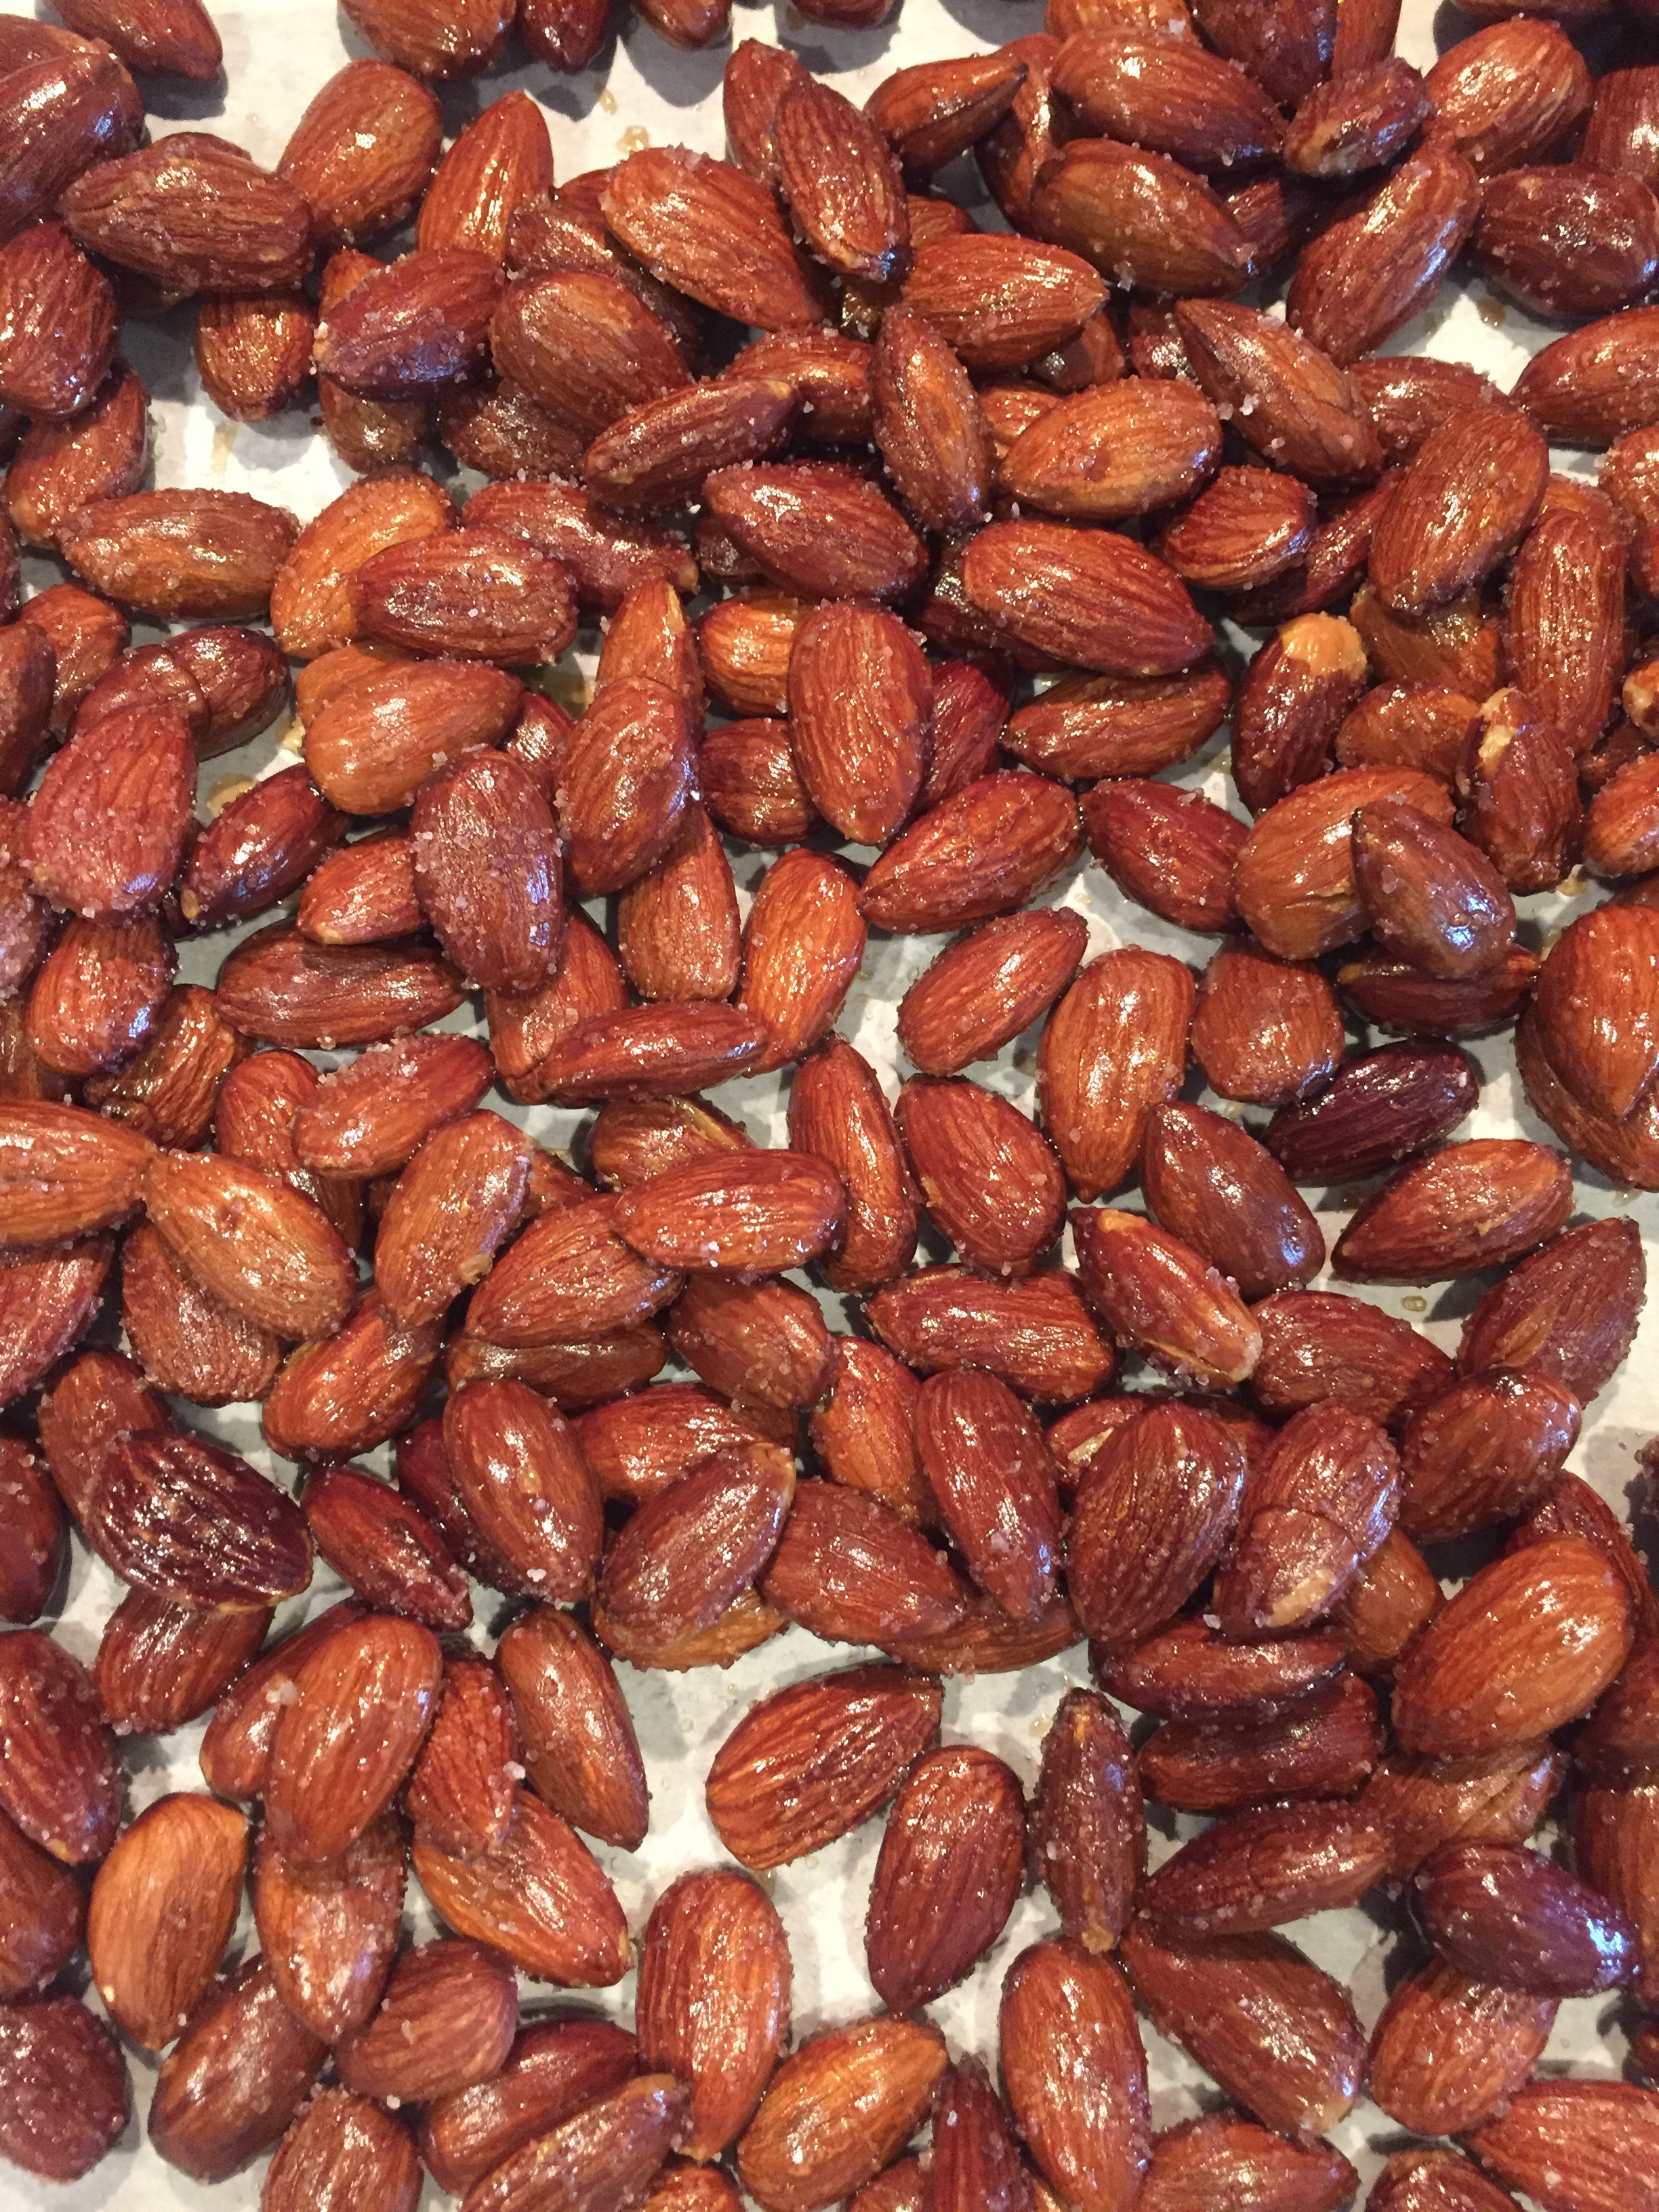 - That's why I've taken to roasting my own almonds. I start with organic, whole, raw almonds, throw them in the oven then toss with olive oil and salt.Deeeee-licious!